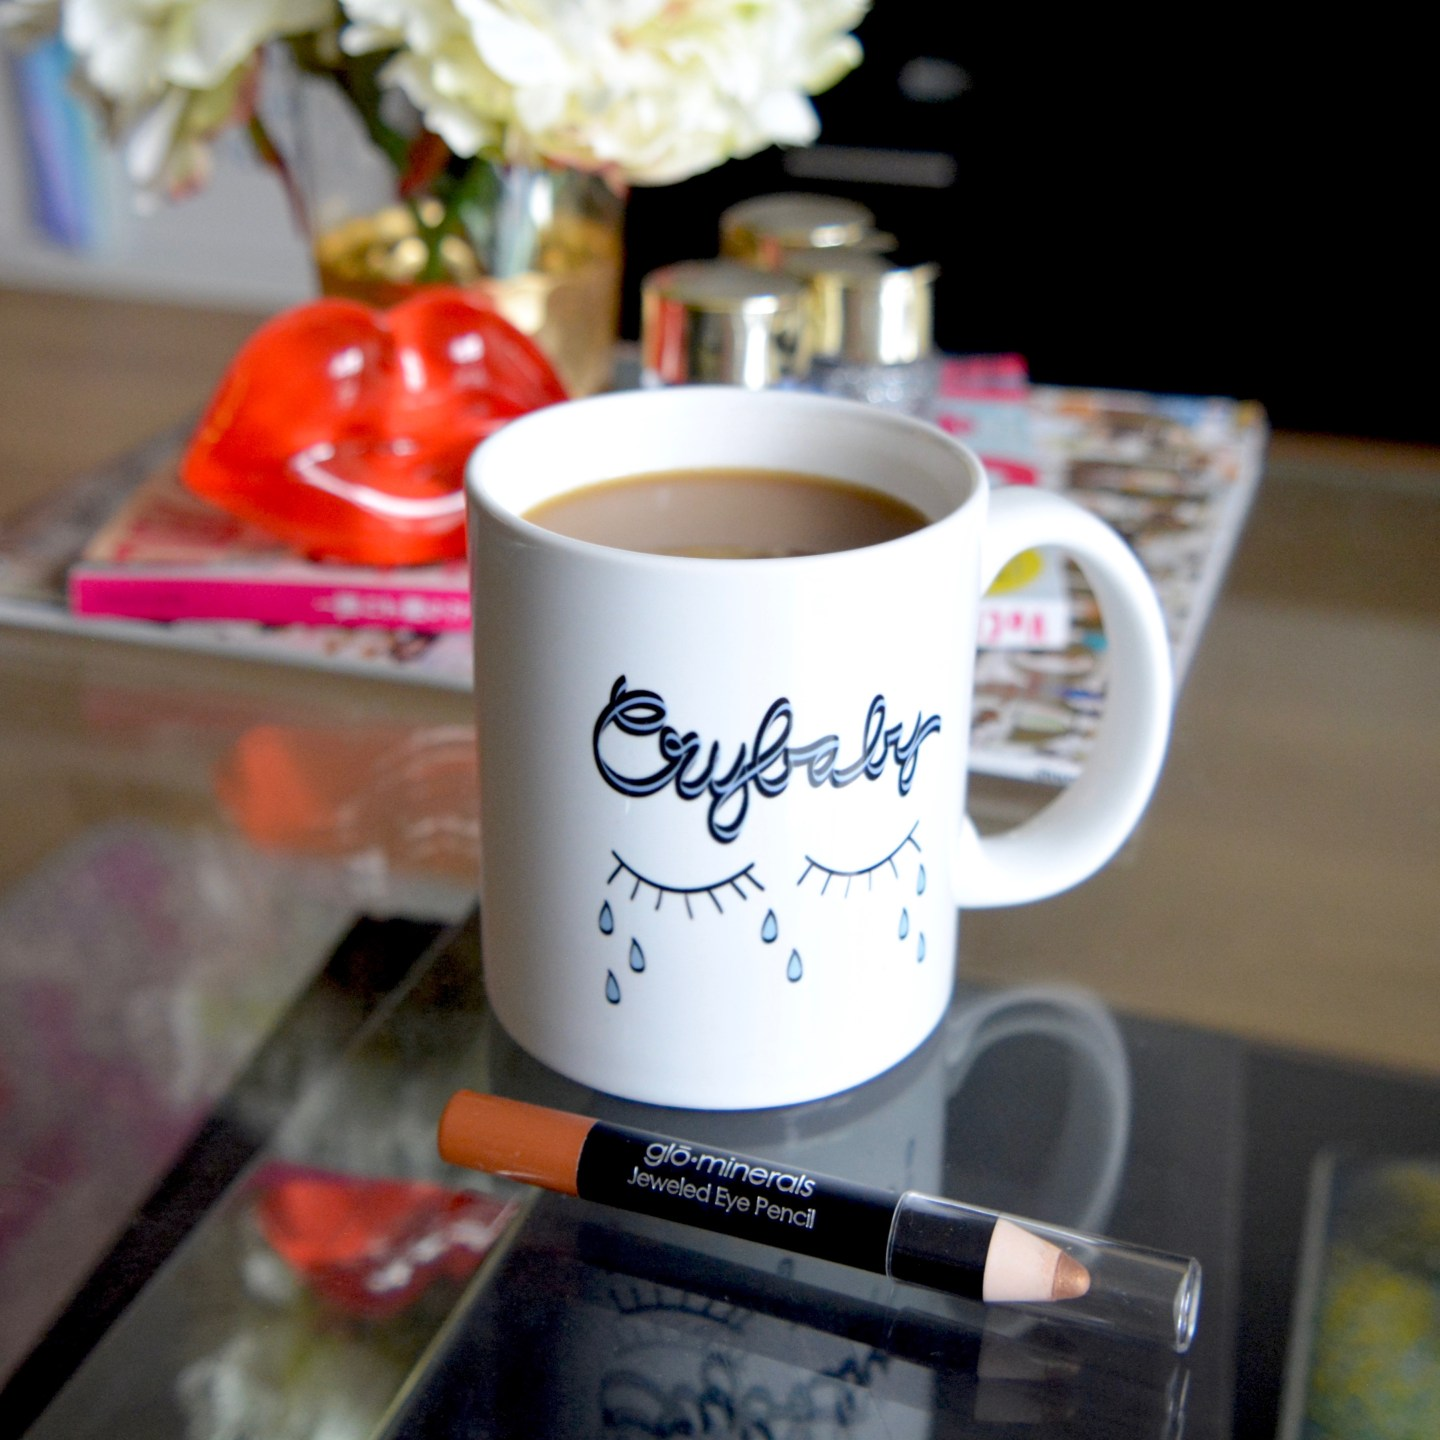 Friday Faves: This Cry Baby mug sums me up so well!